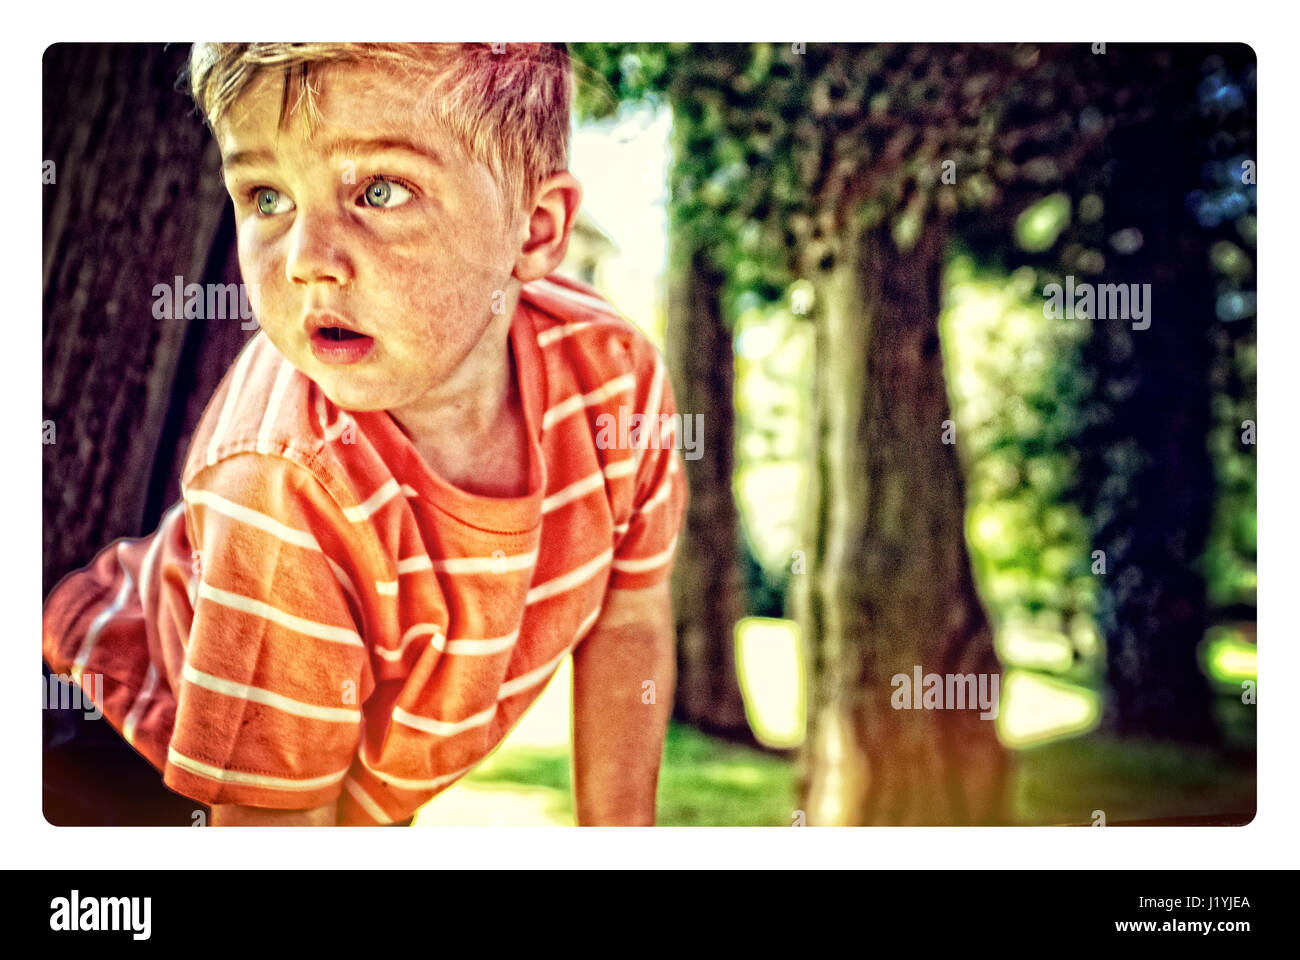 A young boy, exploring and climbing trees - Stock Image